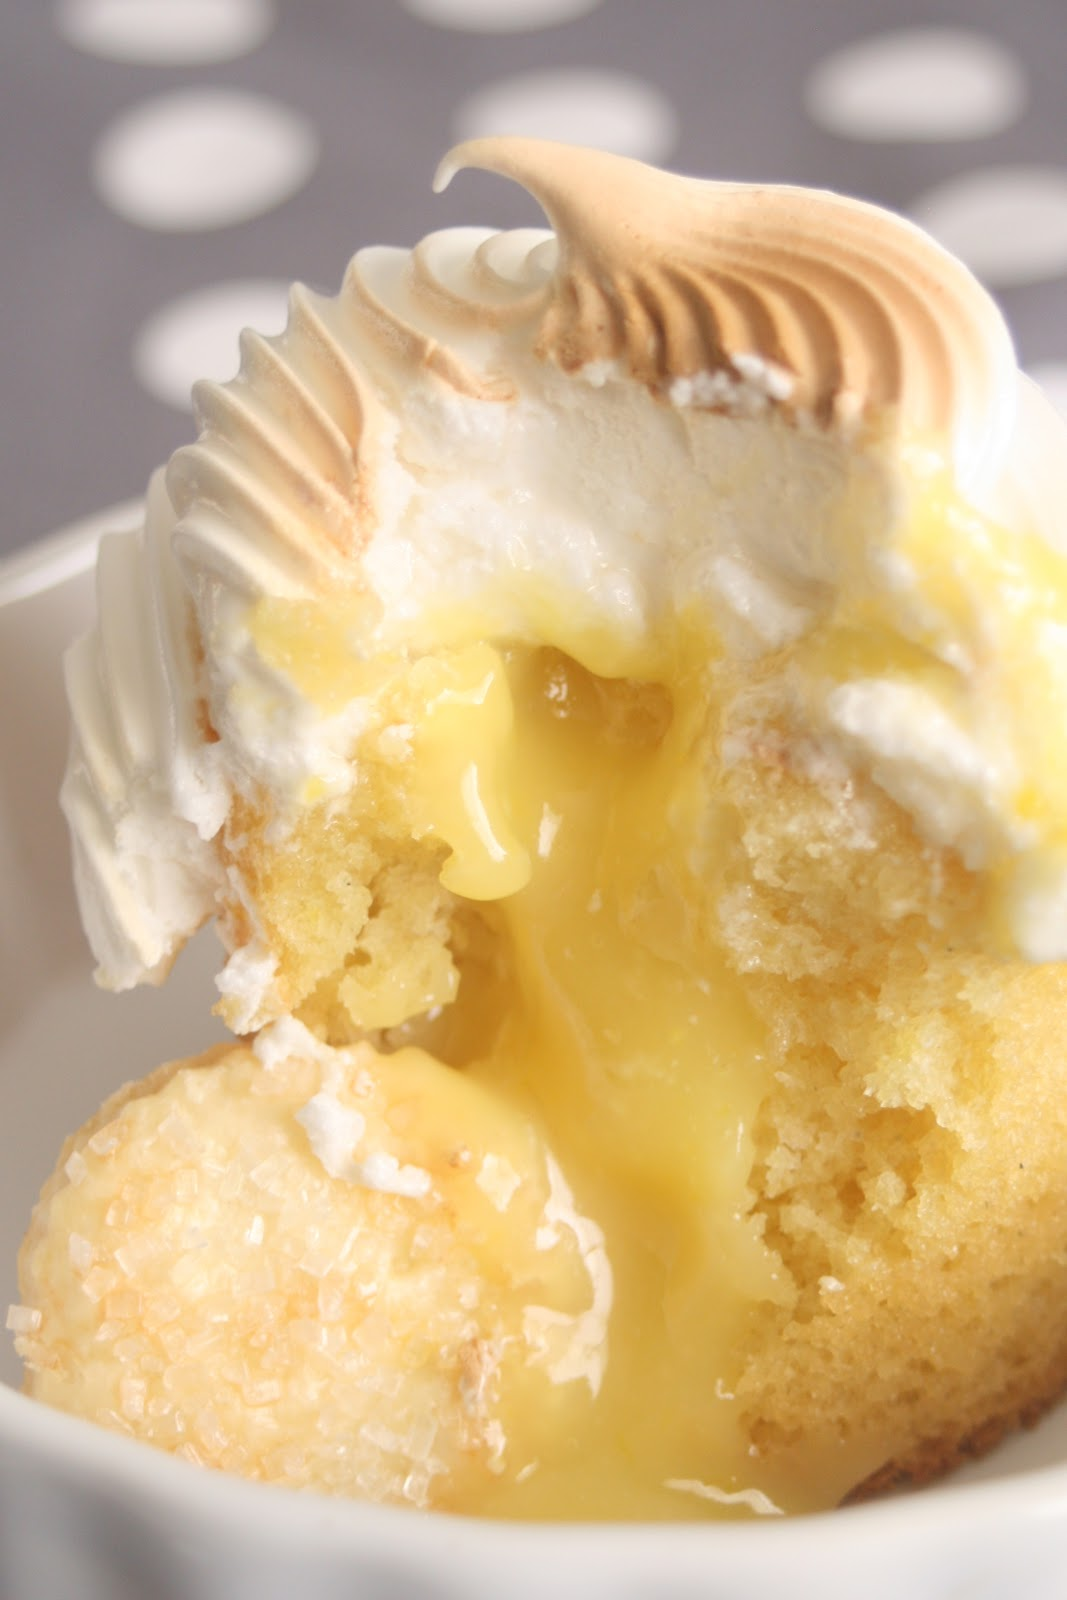 Oh Sweet Bakery: Getting Down and Curdy - Lemon Meringue Cupcakes